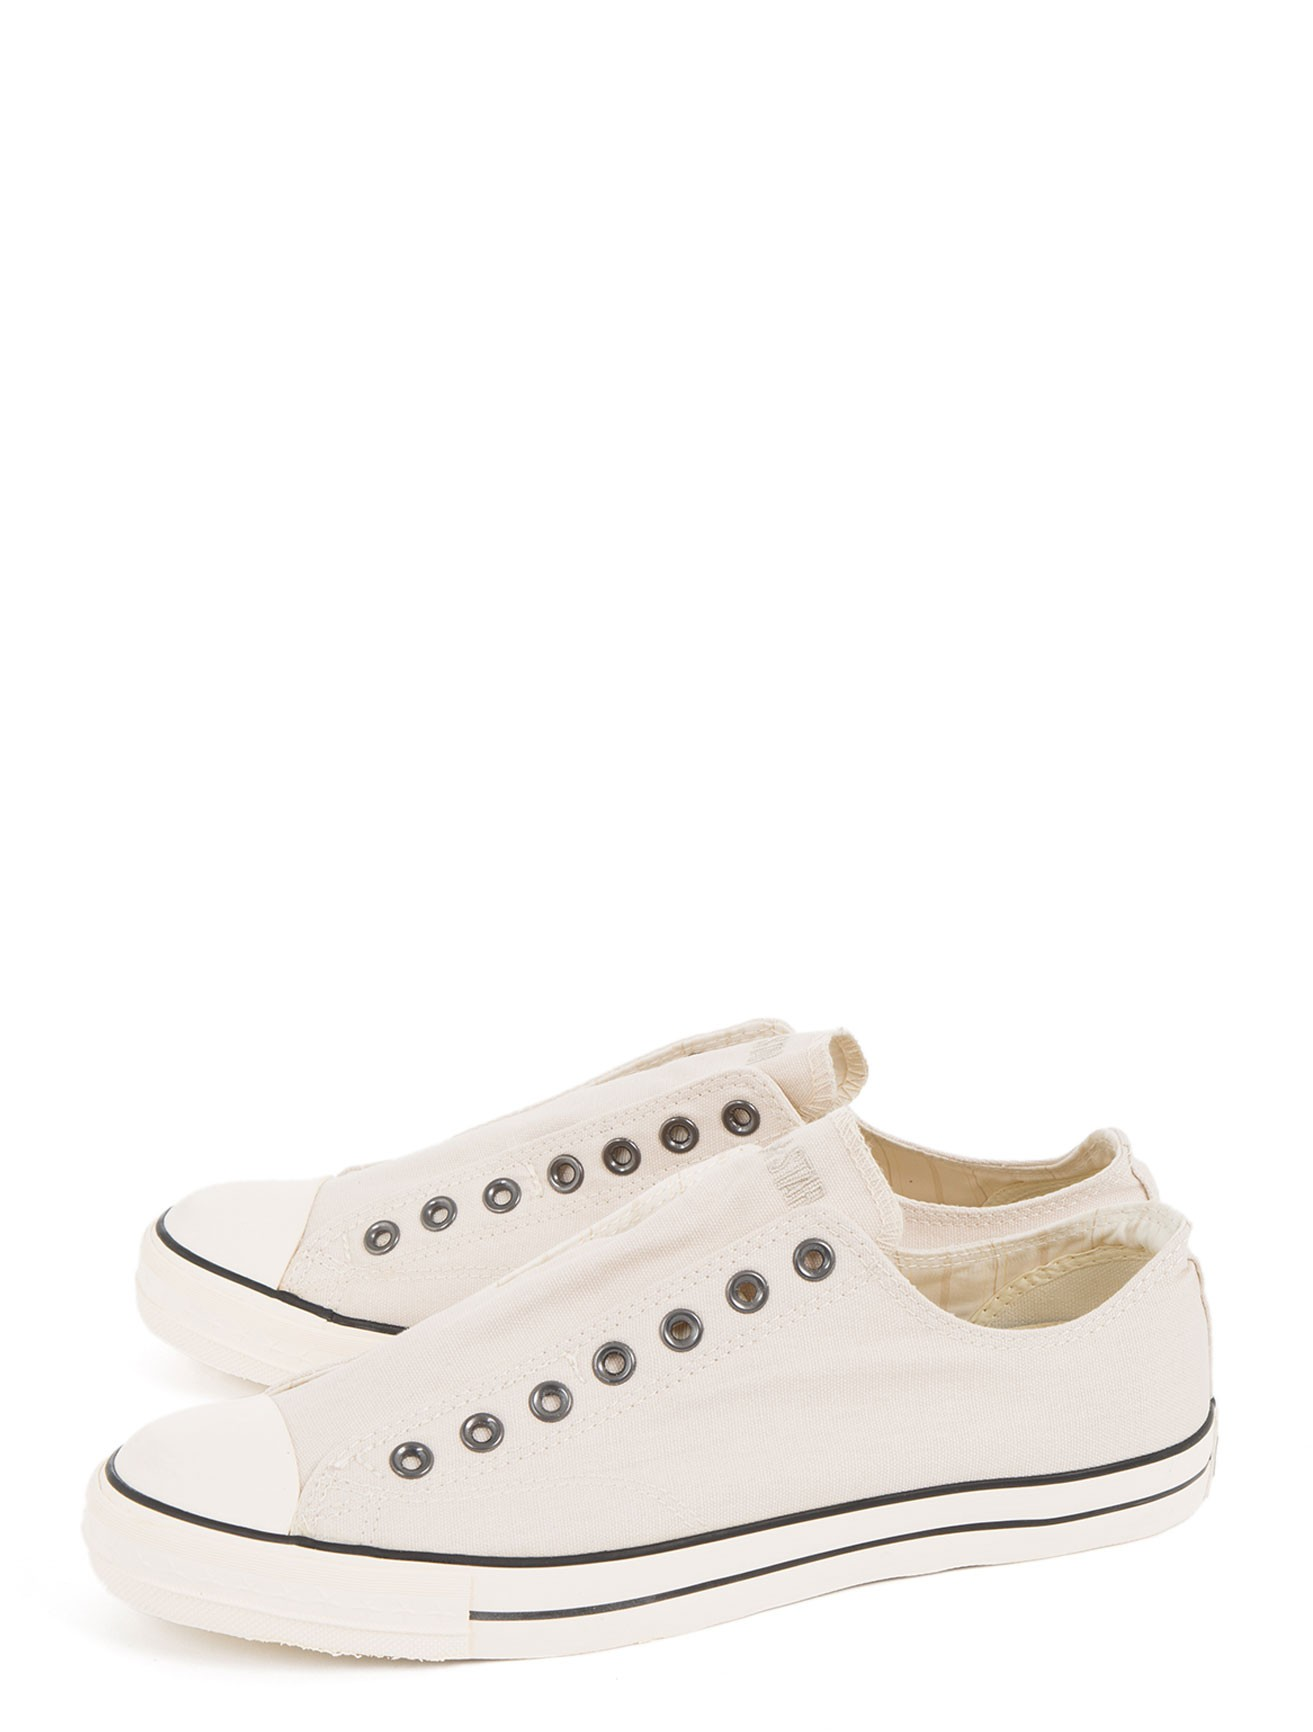 converse buddhist single men Unleash your creativity and design your own converse sneakers personalize every detail by choosing your sneaker, color, print and laces to make your mark.